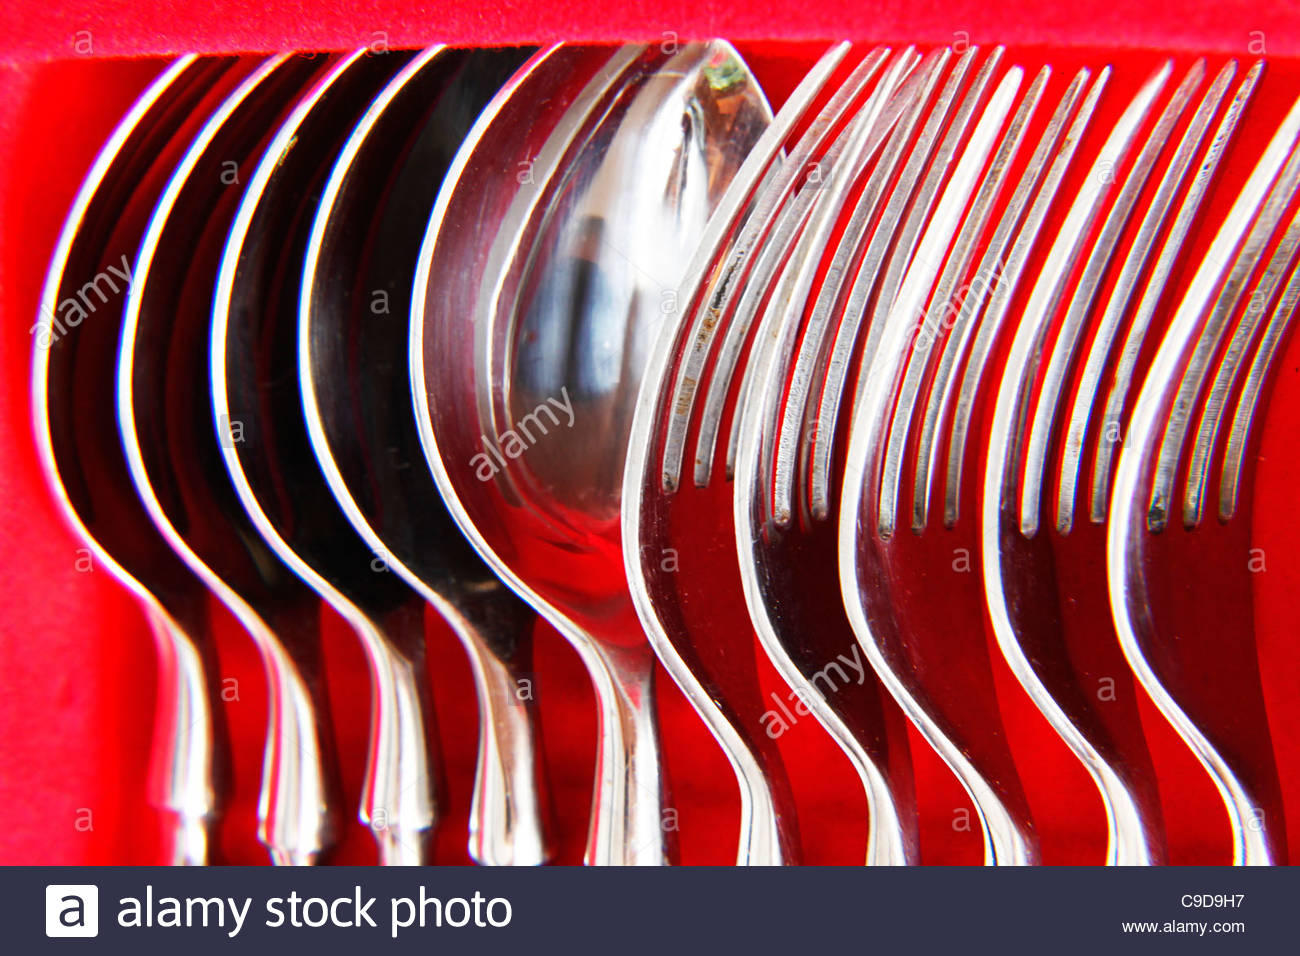 spoons and forks - Stock Image